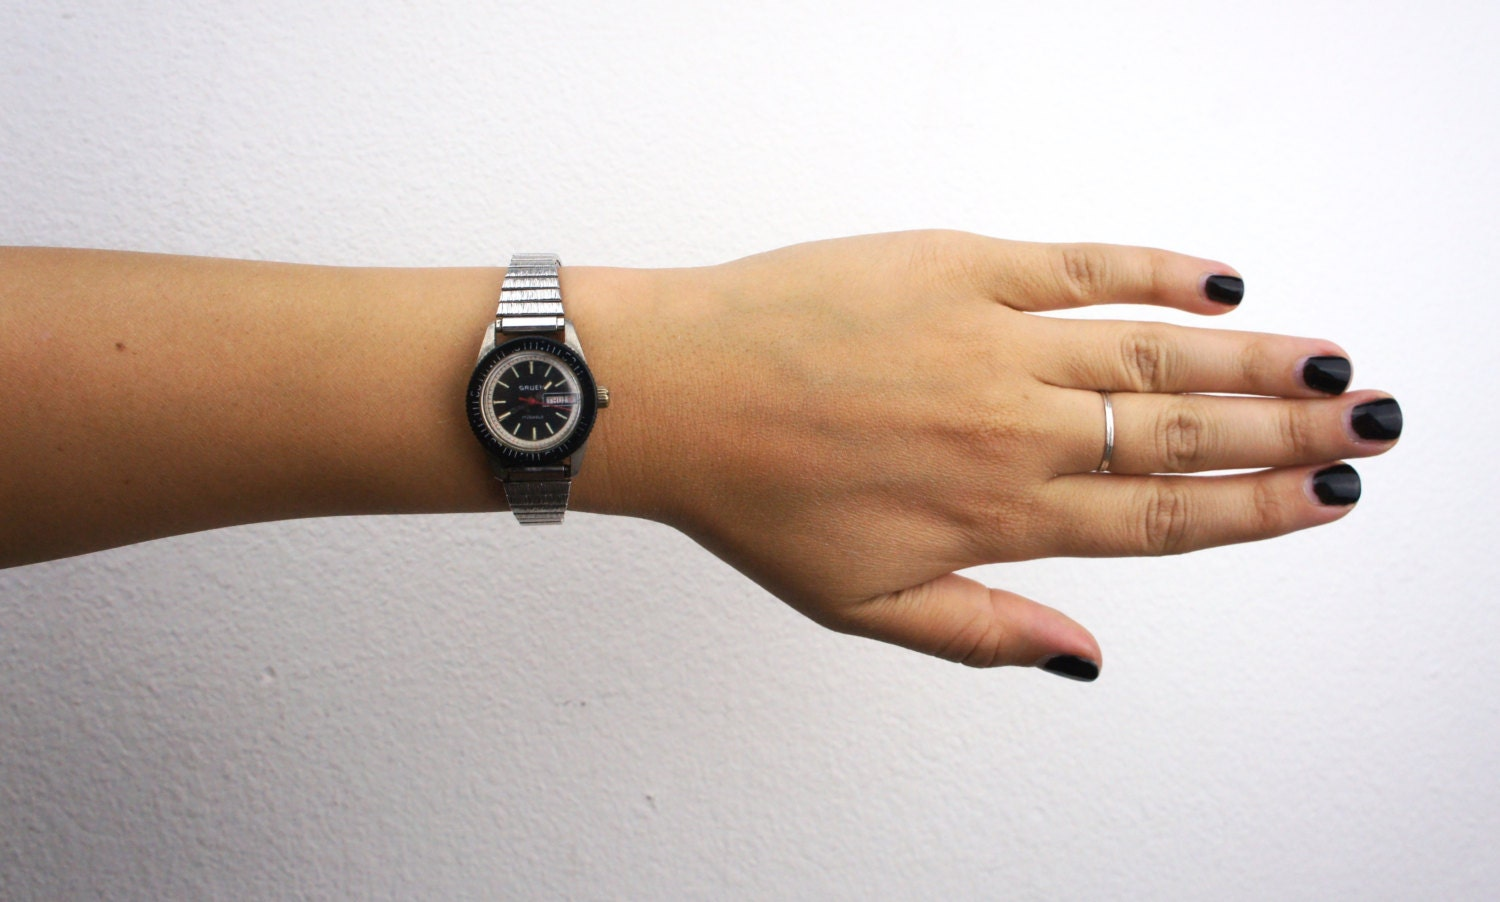 147 additionally Thing besides Jewel Tone Dresses For The Holiday Season besides 183092 in addition Thing. on oscar de la renta black face quartz watch